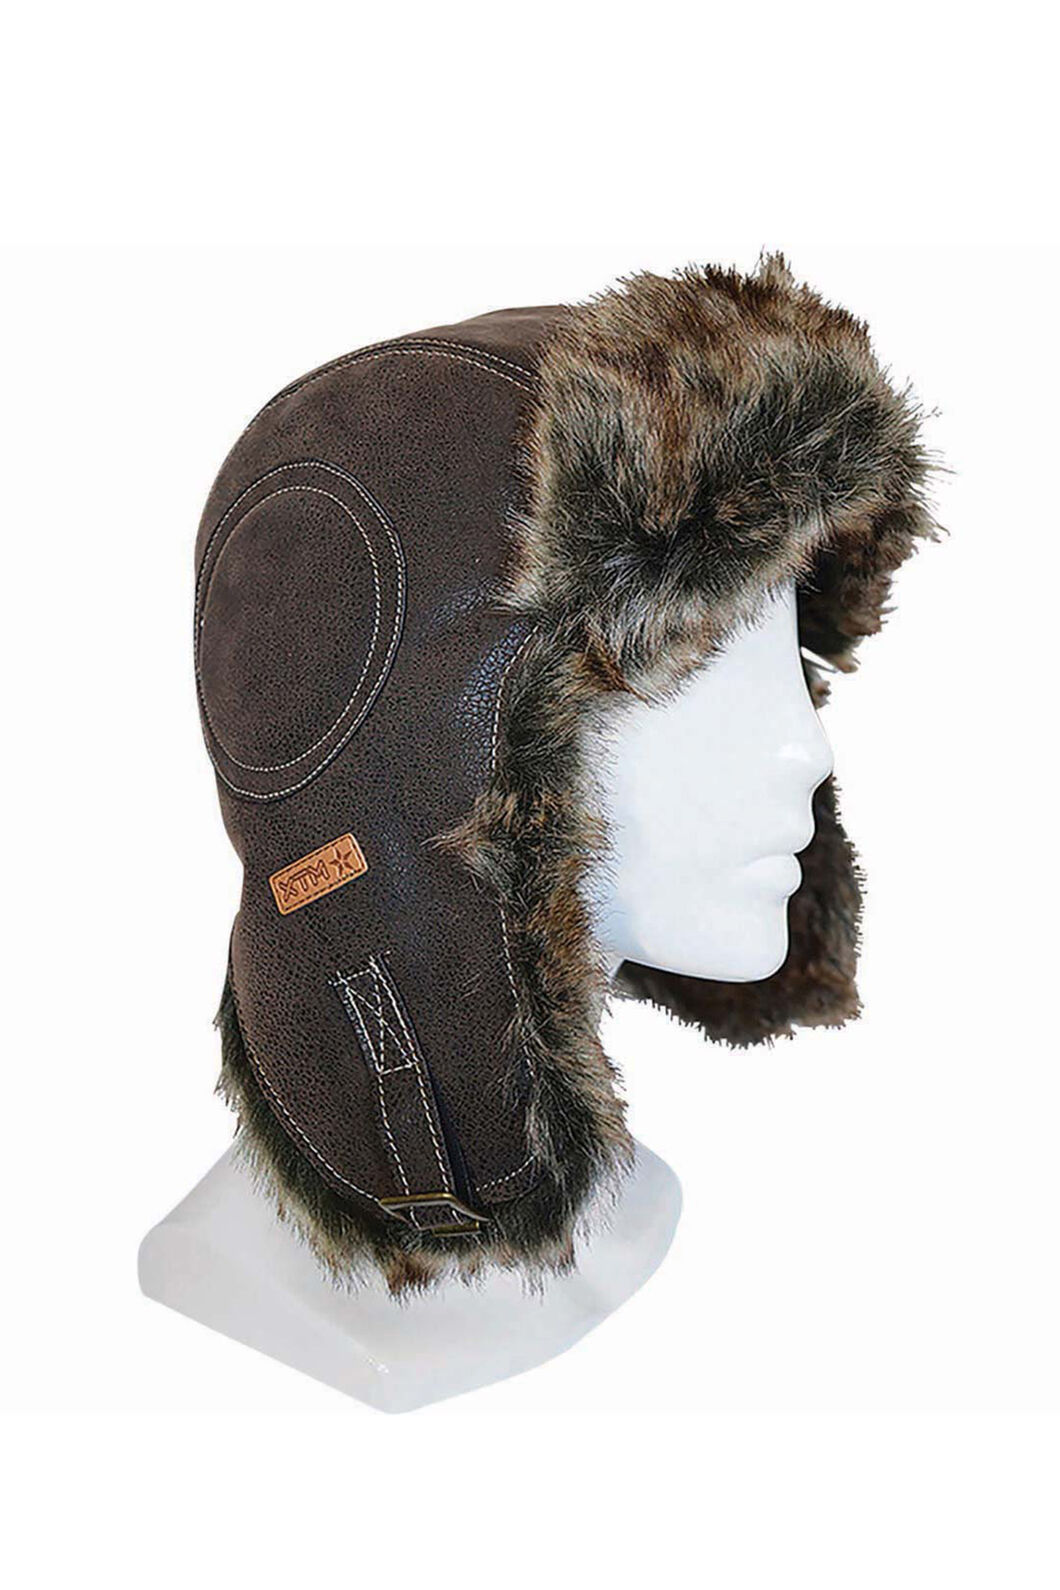 XTM Leather (faux) Bomber Hat, Chocolate, hi-res